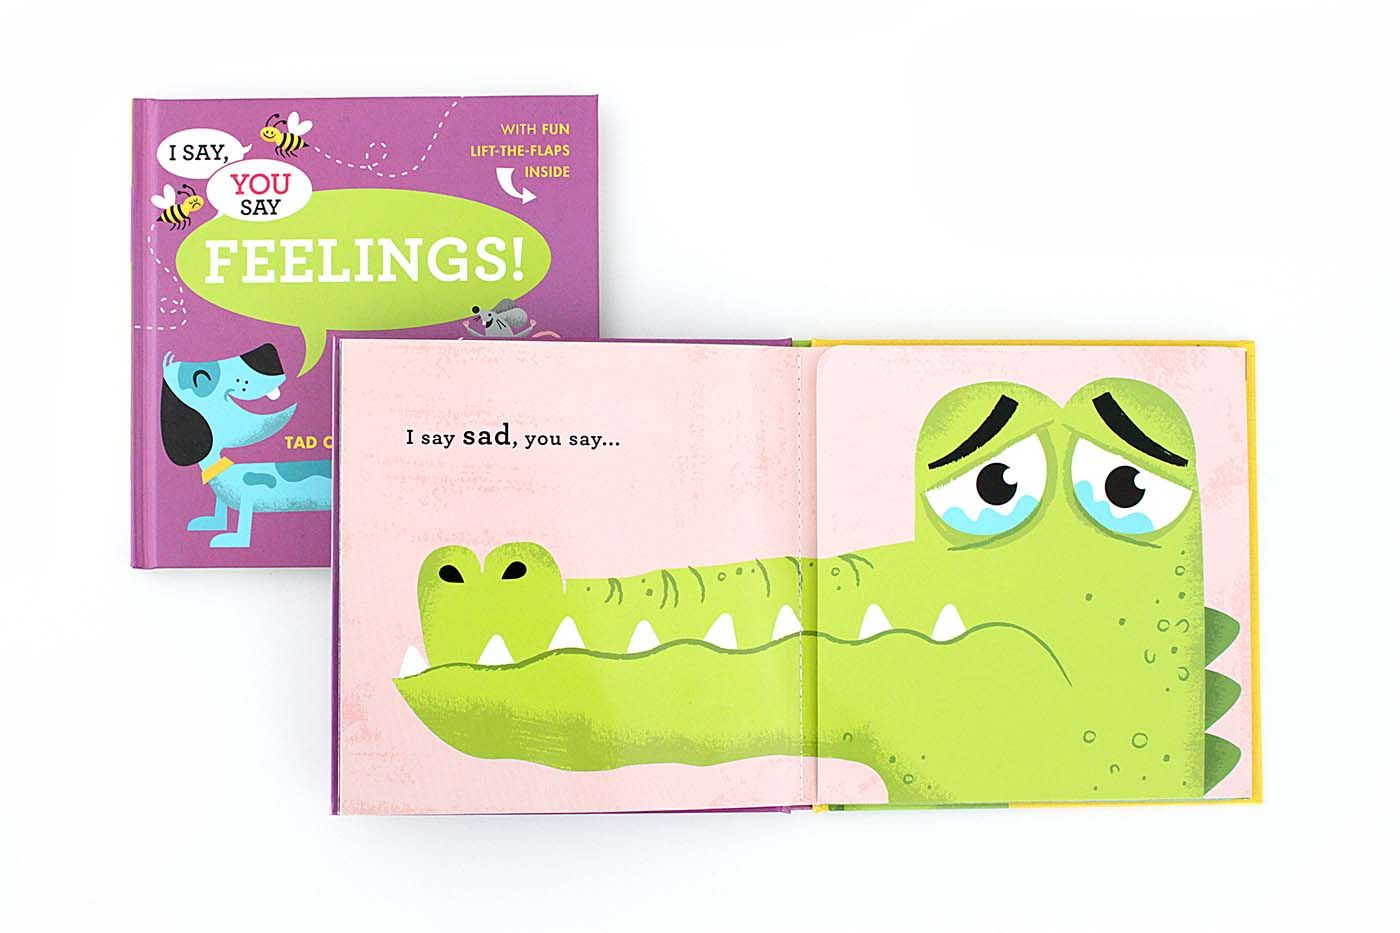 New I Say, You Say Feelings a children's books by Tad Carpenter